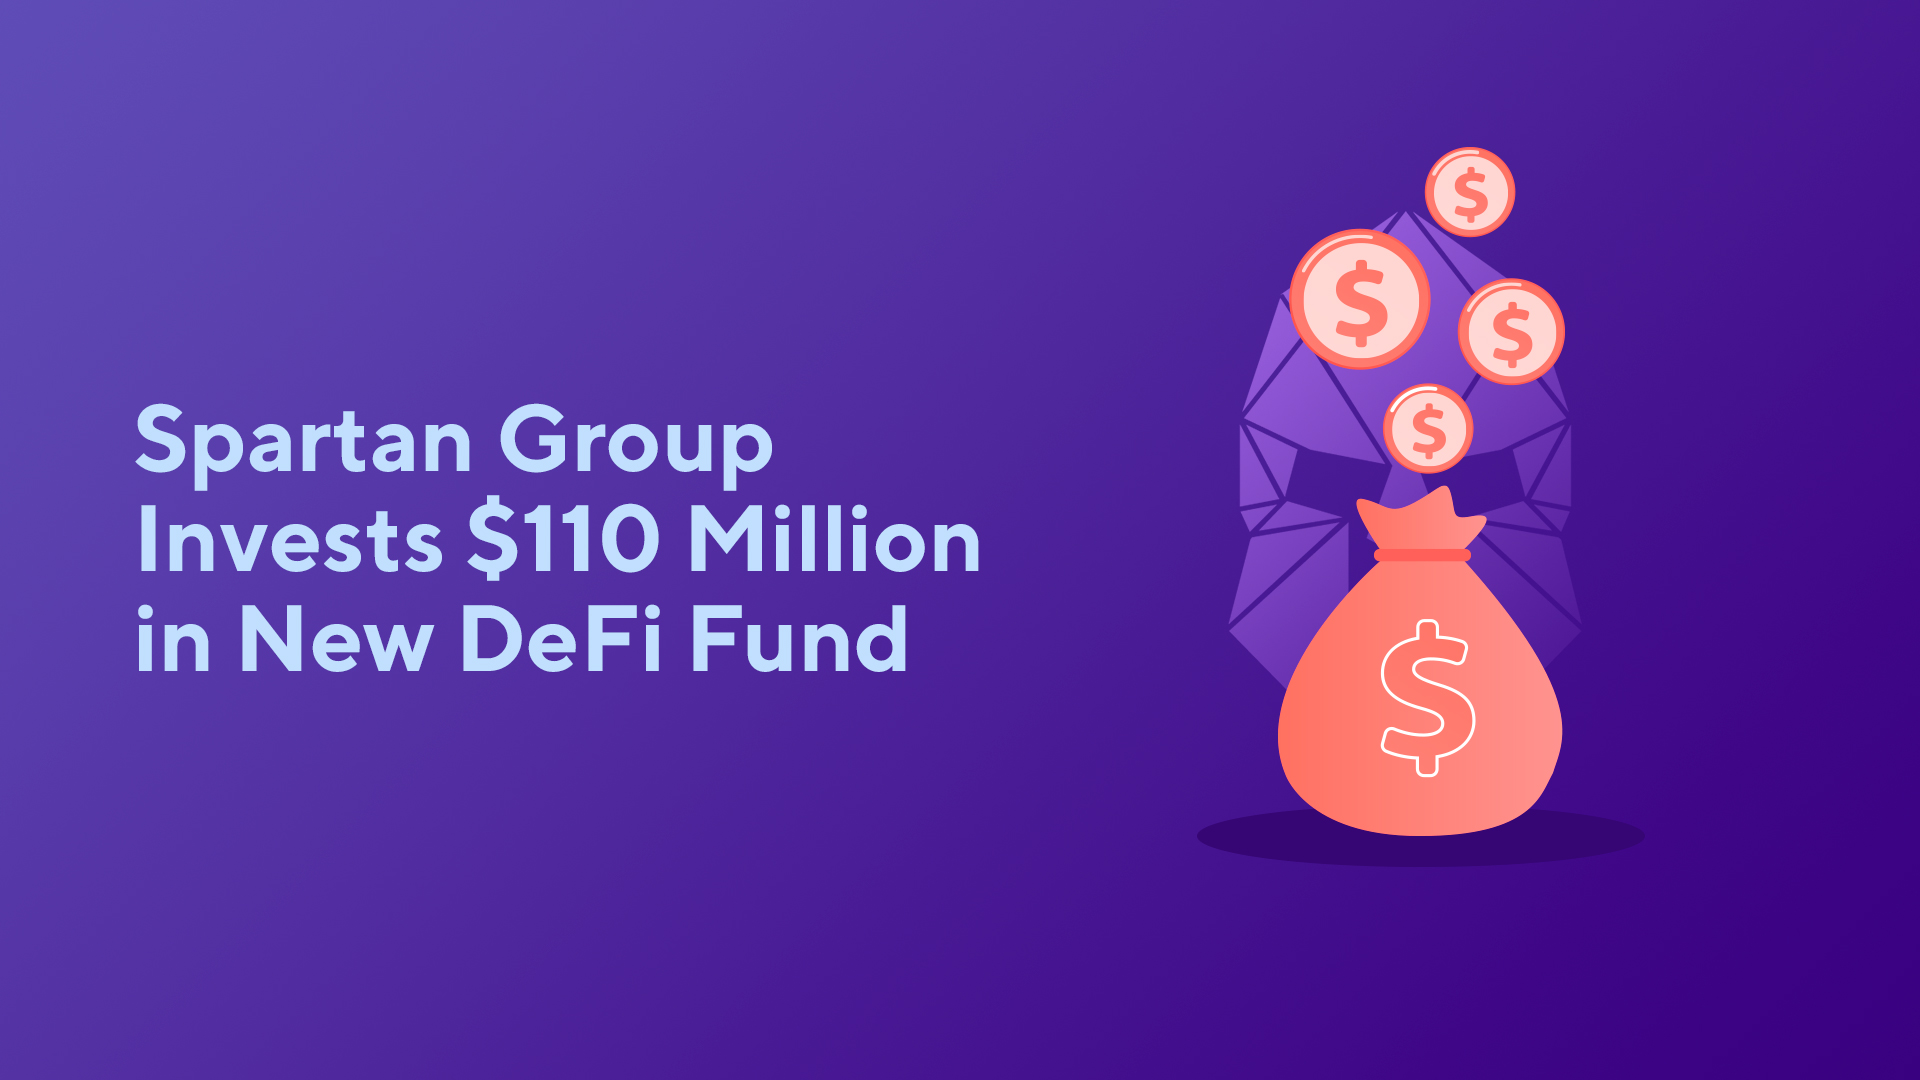 Spartan Group Invests $110 Million in New DeFi Fund